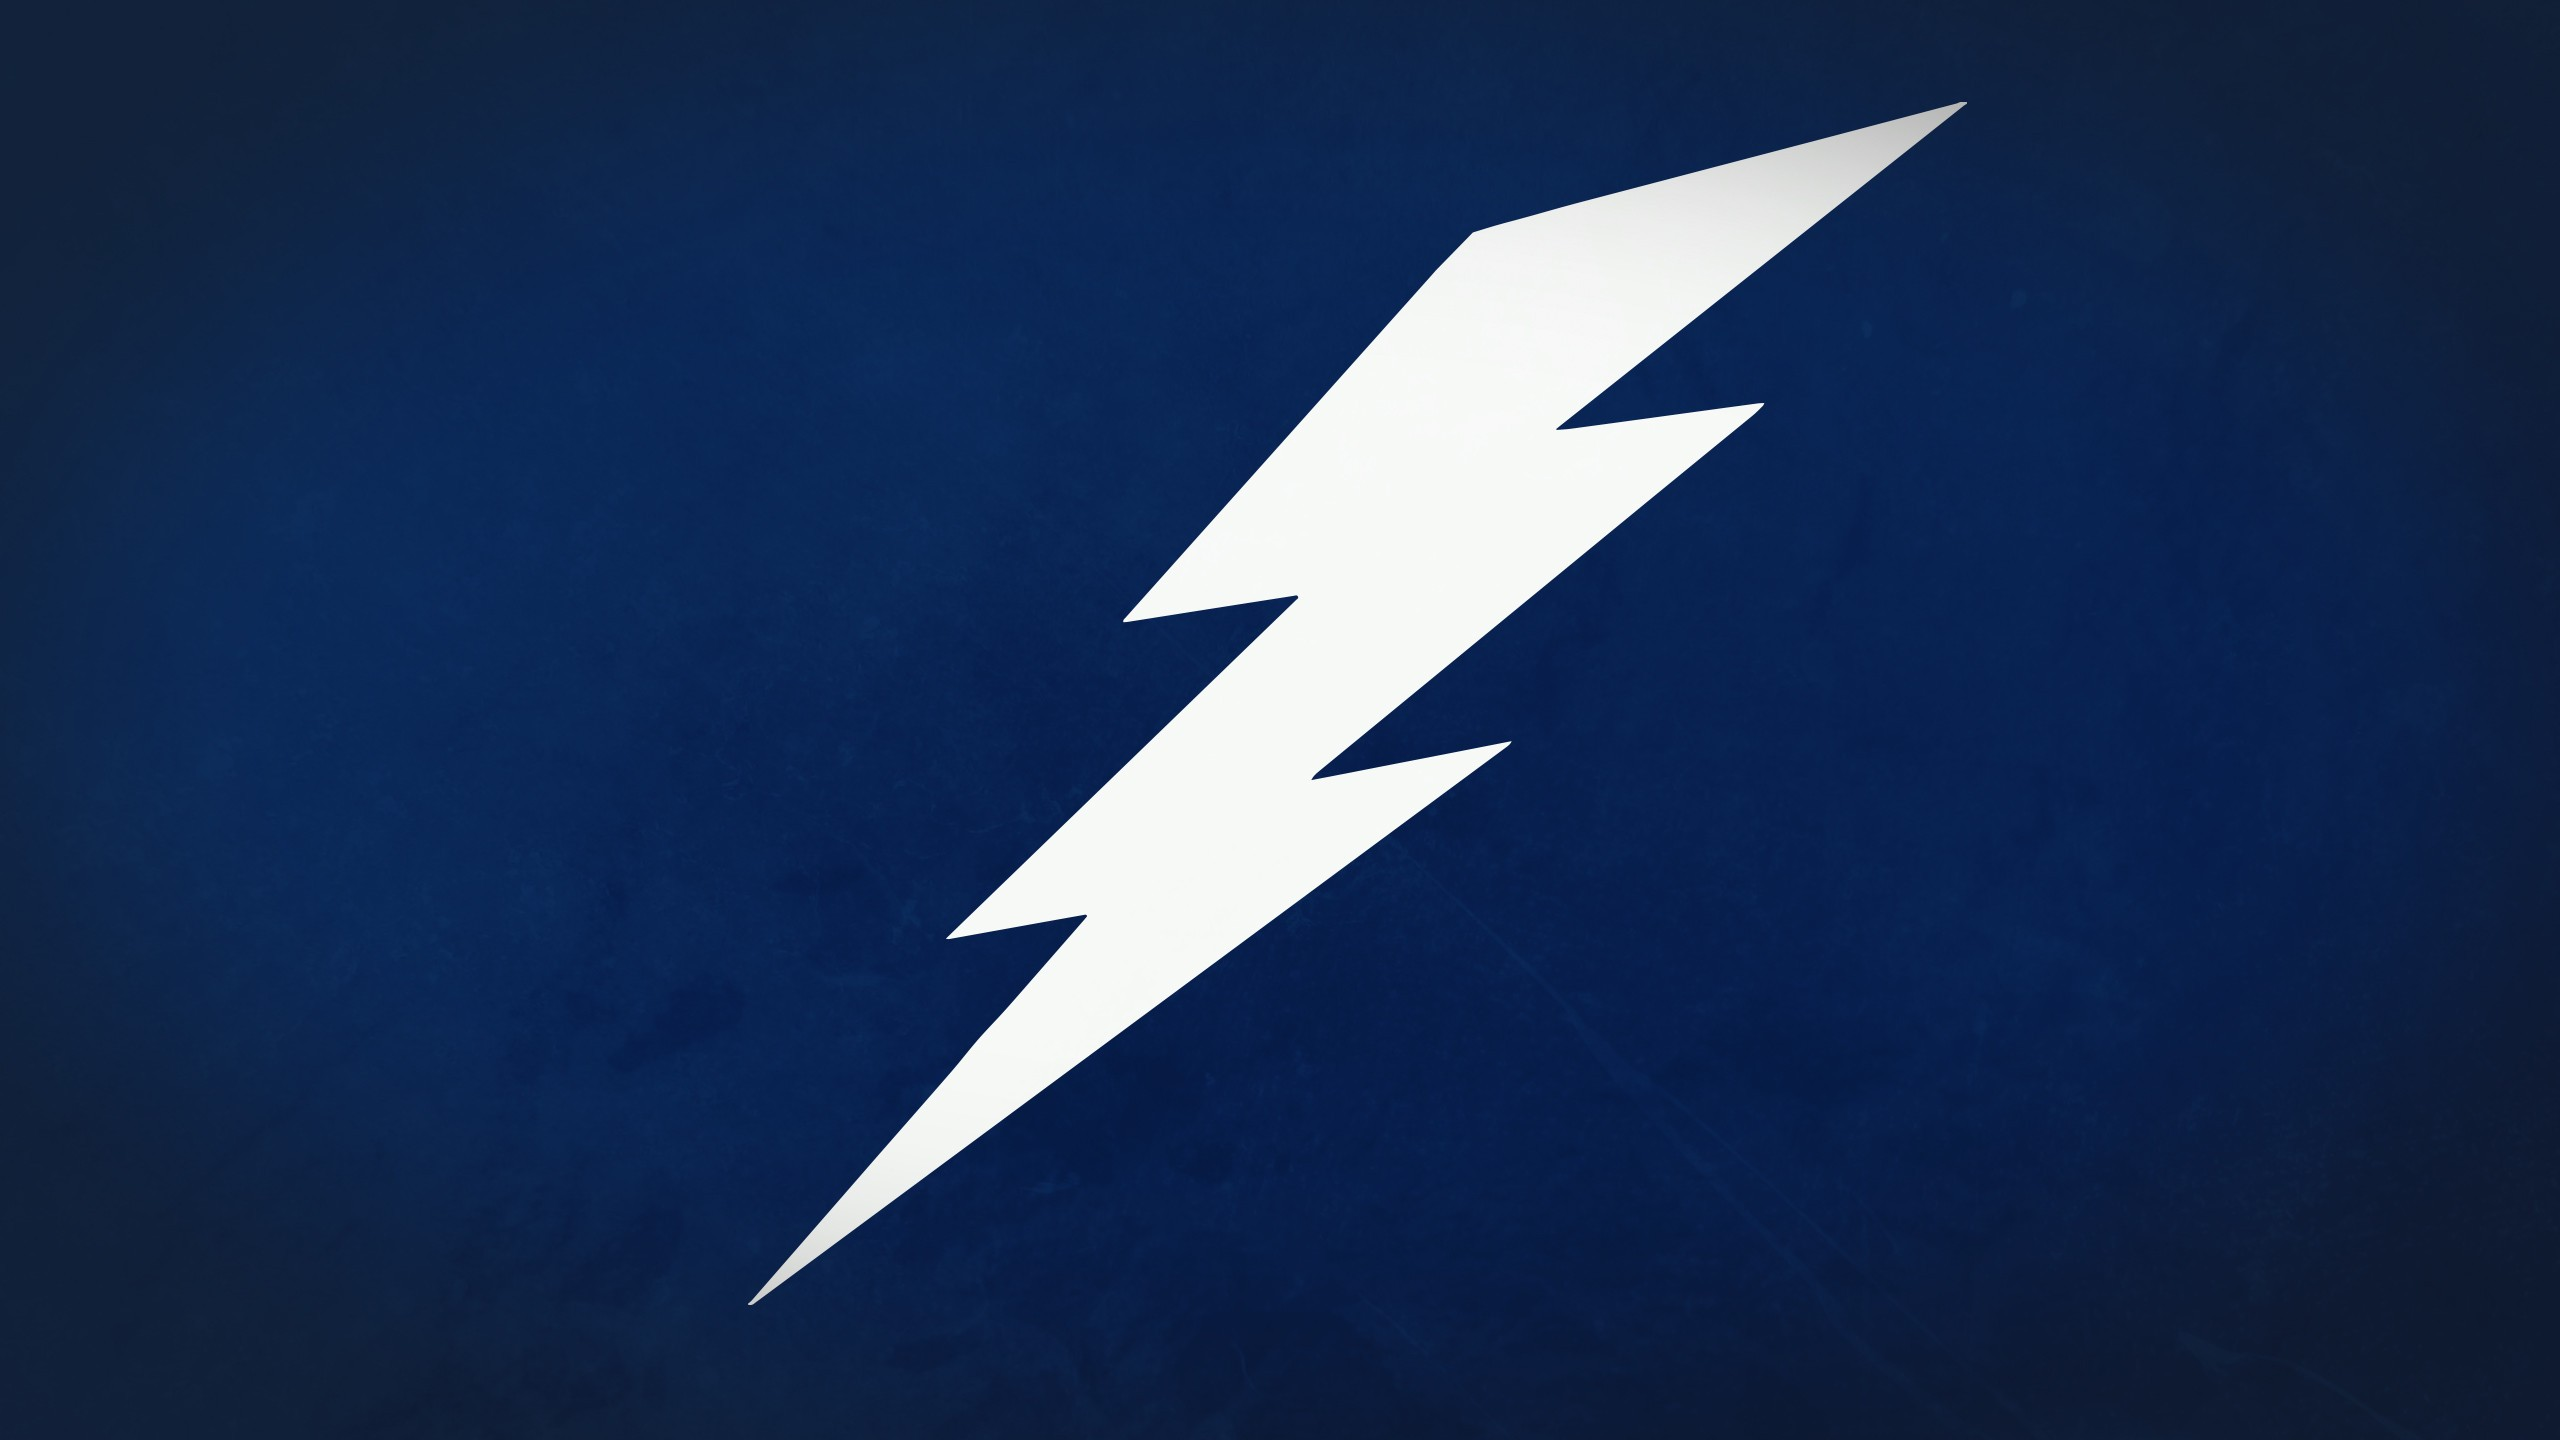 Tampa Bay Lightning Full HD Wallpaper And Background Image